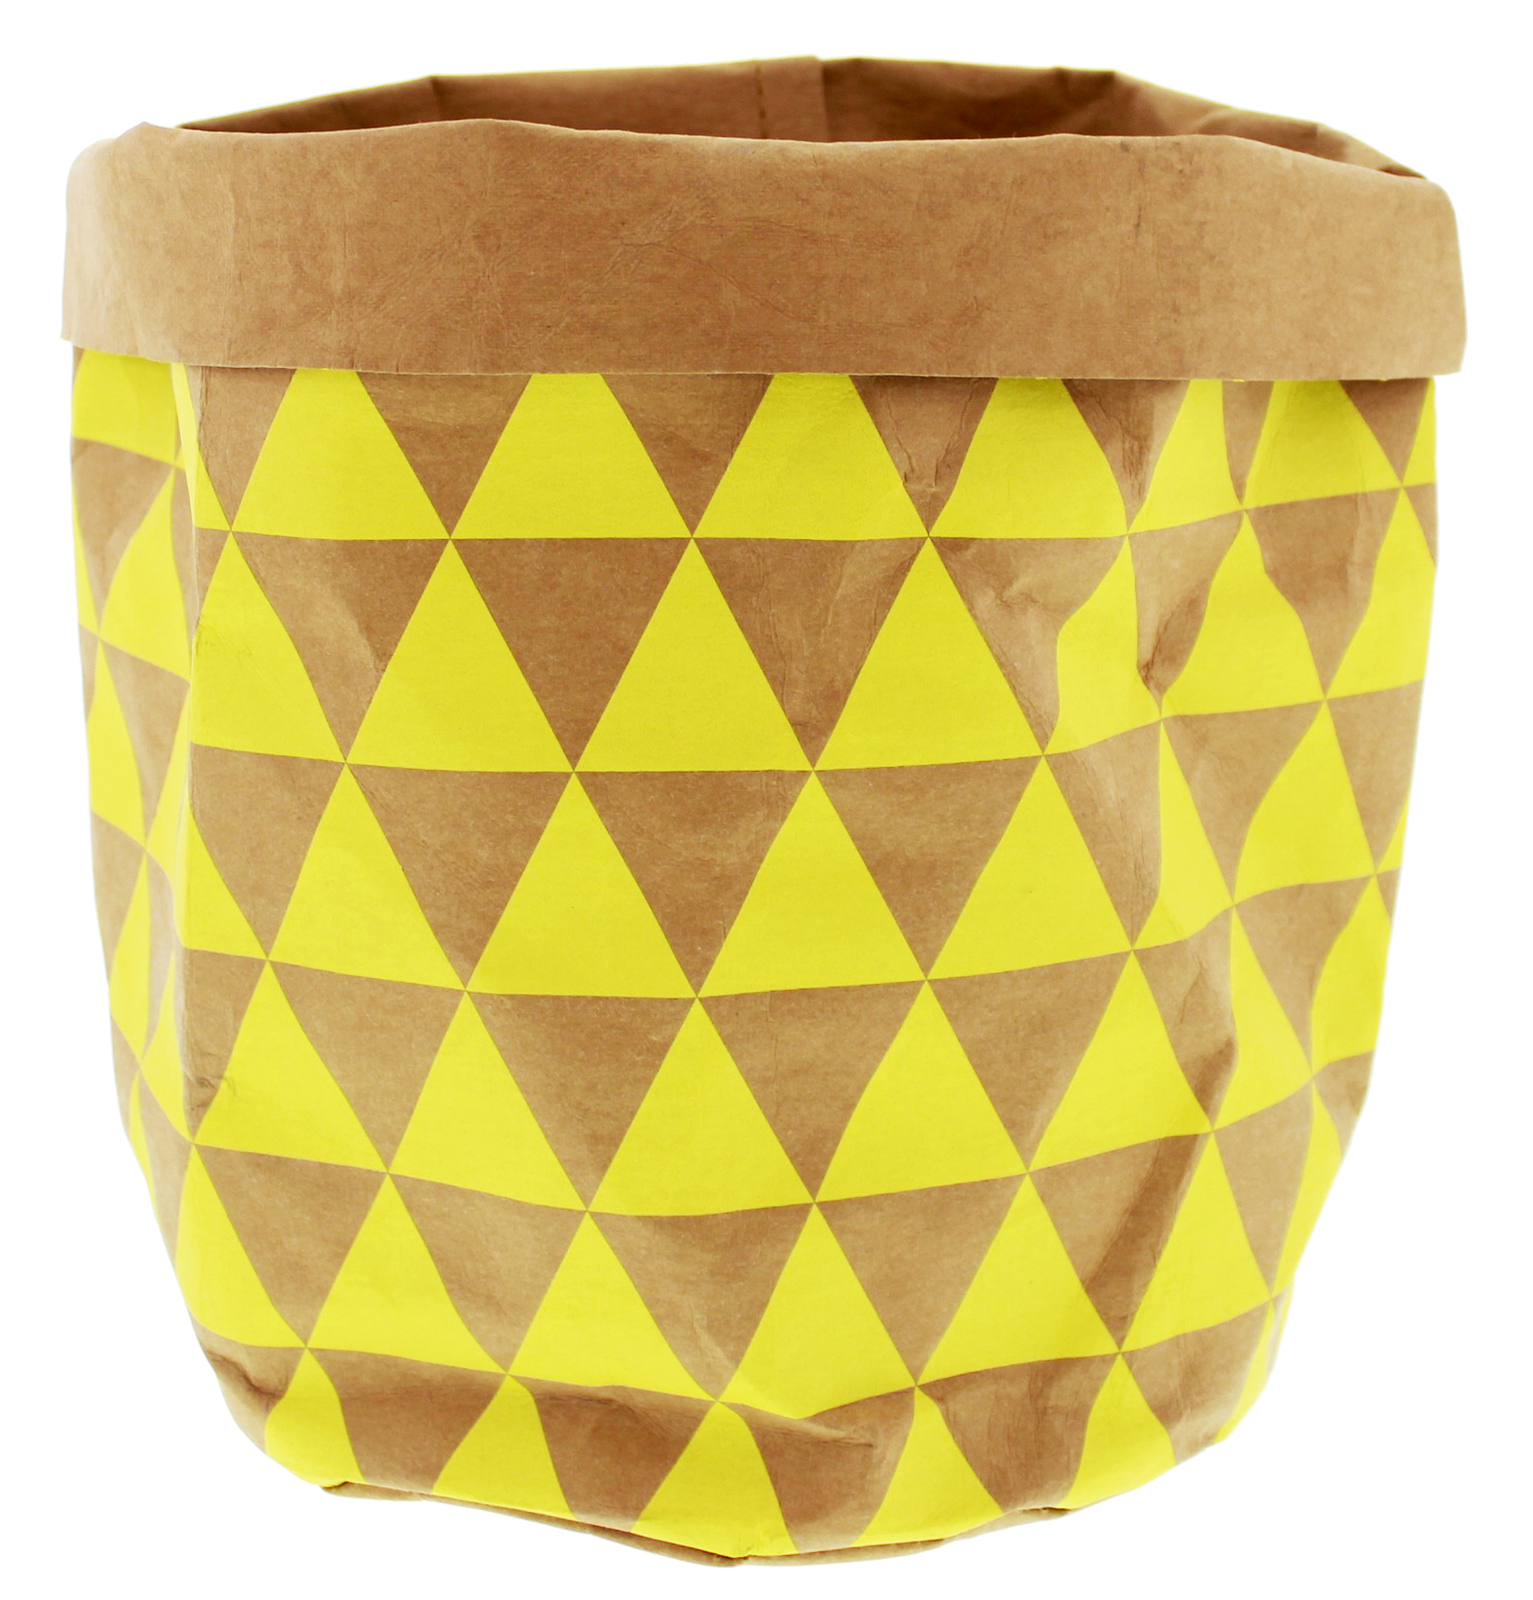 Paper bag yellow -  General Eclectic Triangles Washable Paper Bag Tan Yellow Image